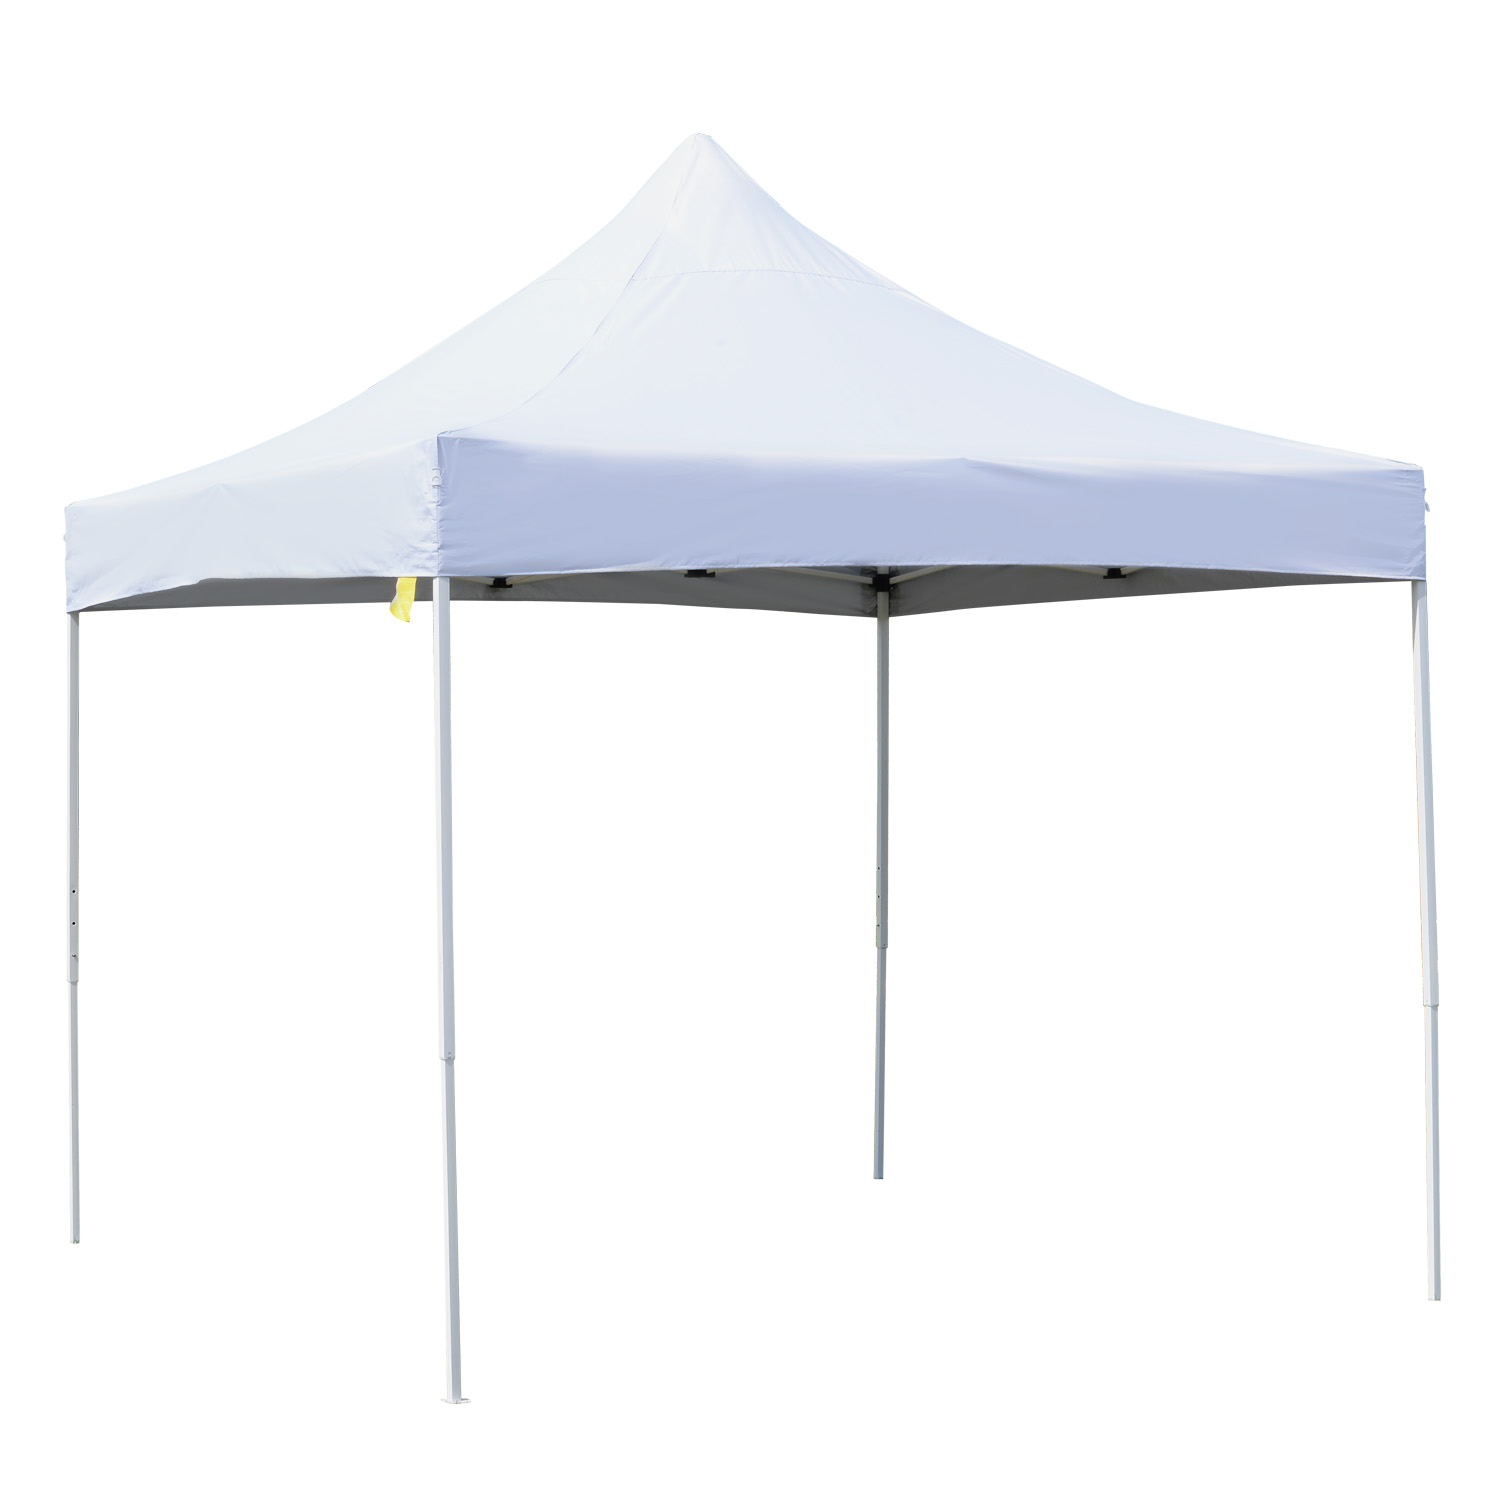 Image of £54.99 Outsunny Pop-up Tent Canopy, 3x3 m-White / 3M x Garden Canopy Sun Shelter Party Marquee Wedding Gazebo w/Carry Bag - White Shade Carry Fold Steel Patio 84C-076WT 5056029889718